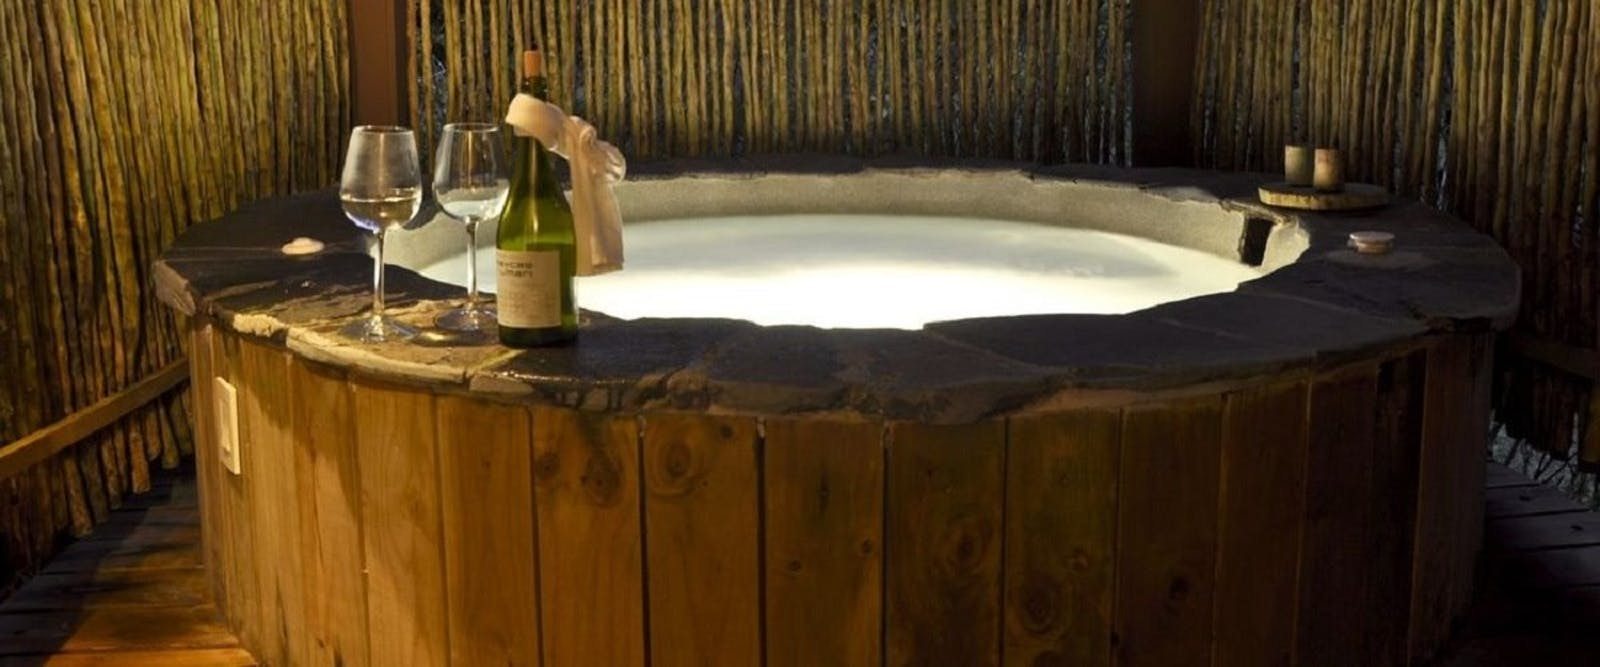 Whirlpool bath in ensuite, El Silencio Lodge, Costa Rica